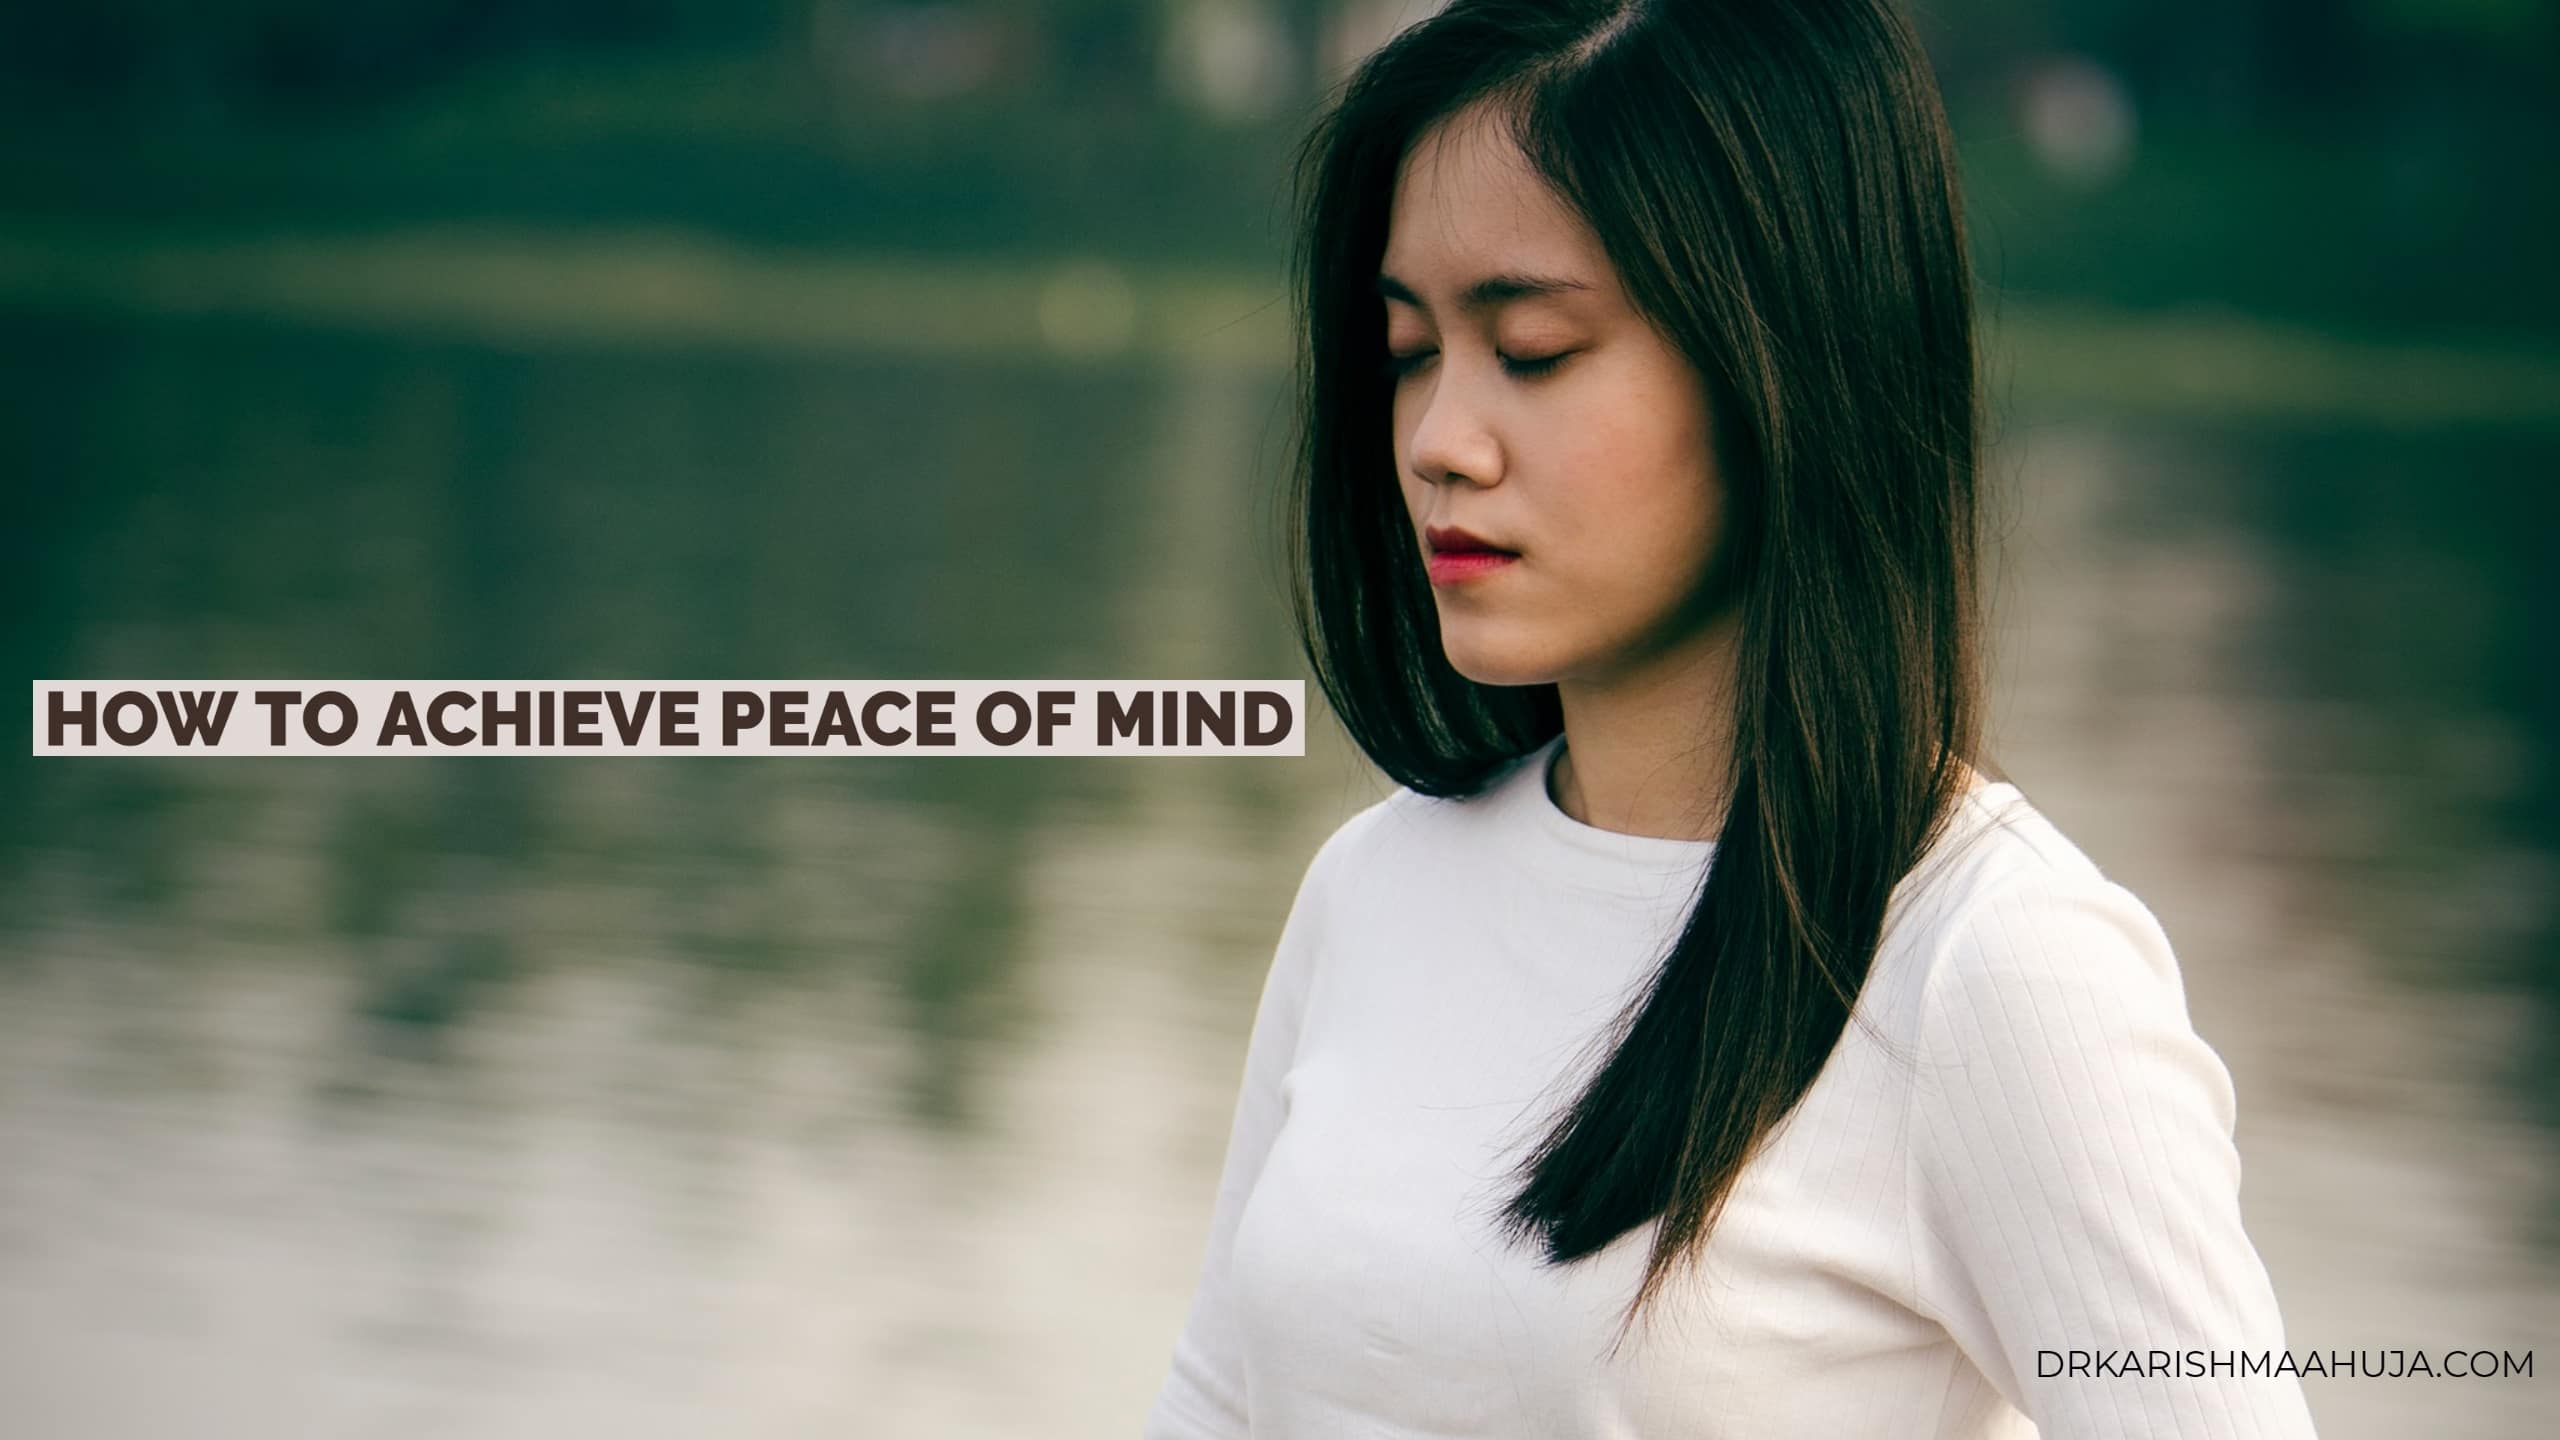 How to Attain Peace of Mind-Blog Post by Dr Karishma Ahuja